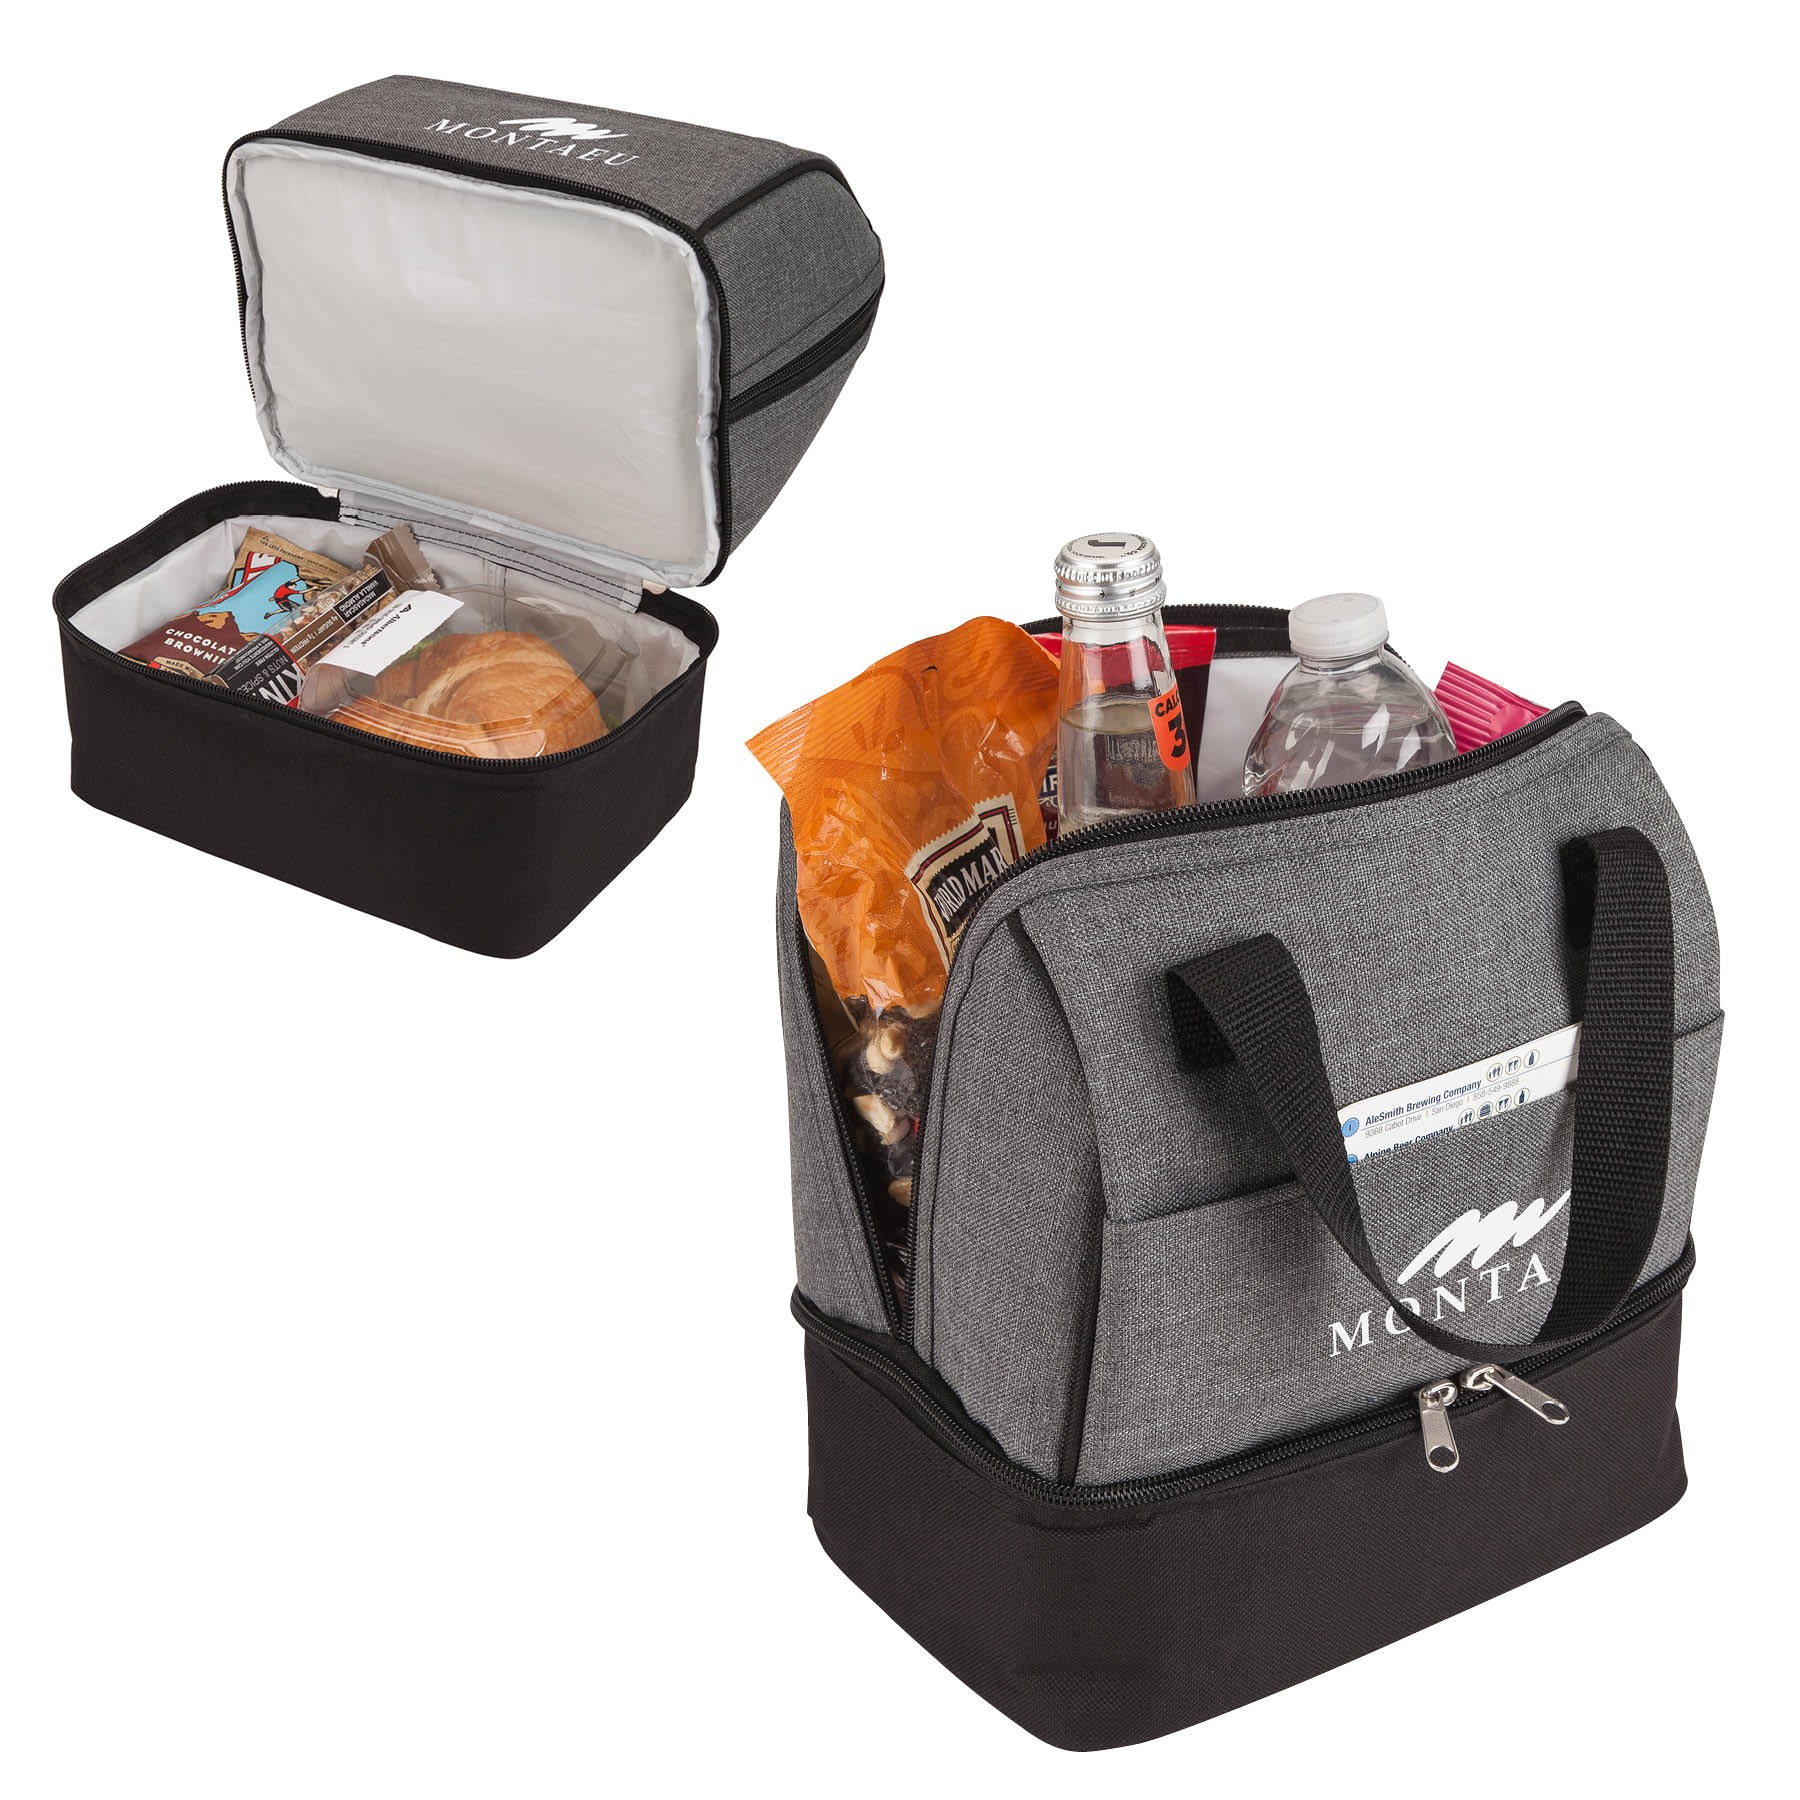 Canyons Lunch Sack / Cooler Bag